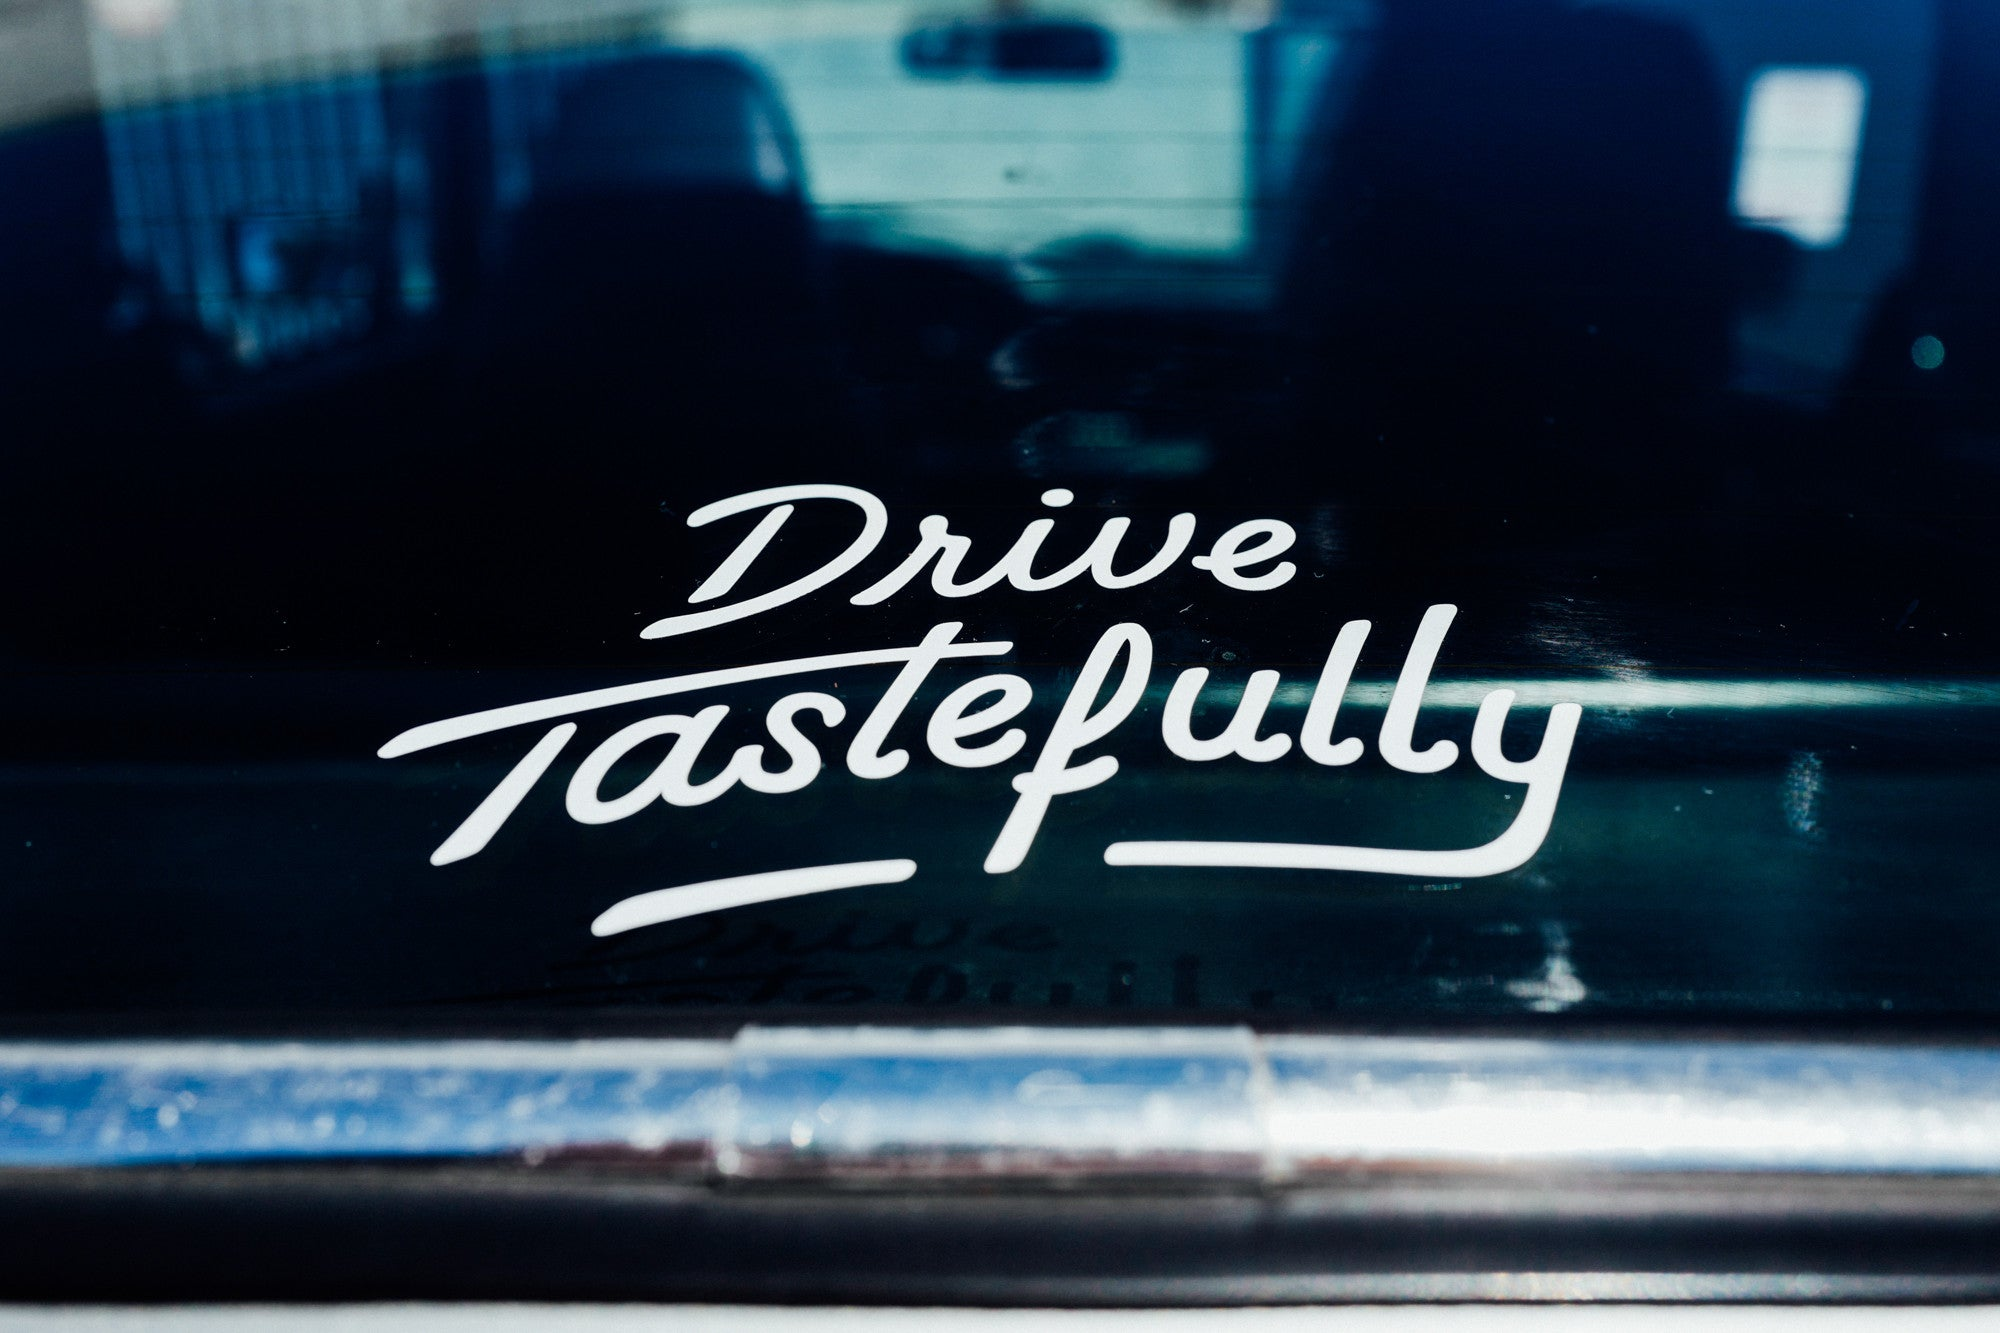 """Drive Tastefully"" Vinyl Decal"